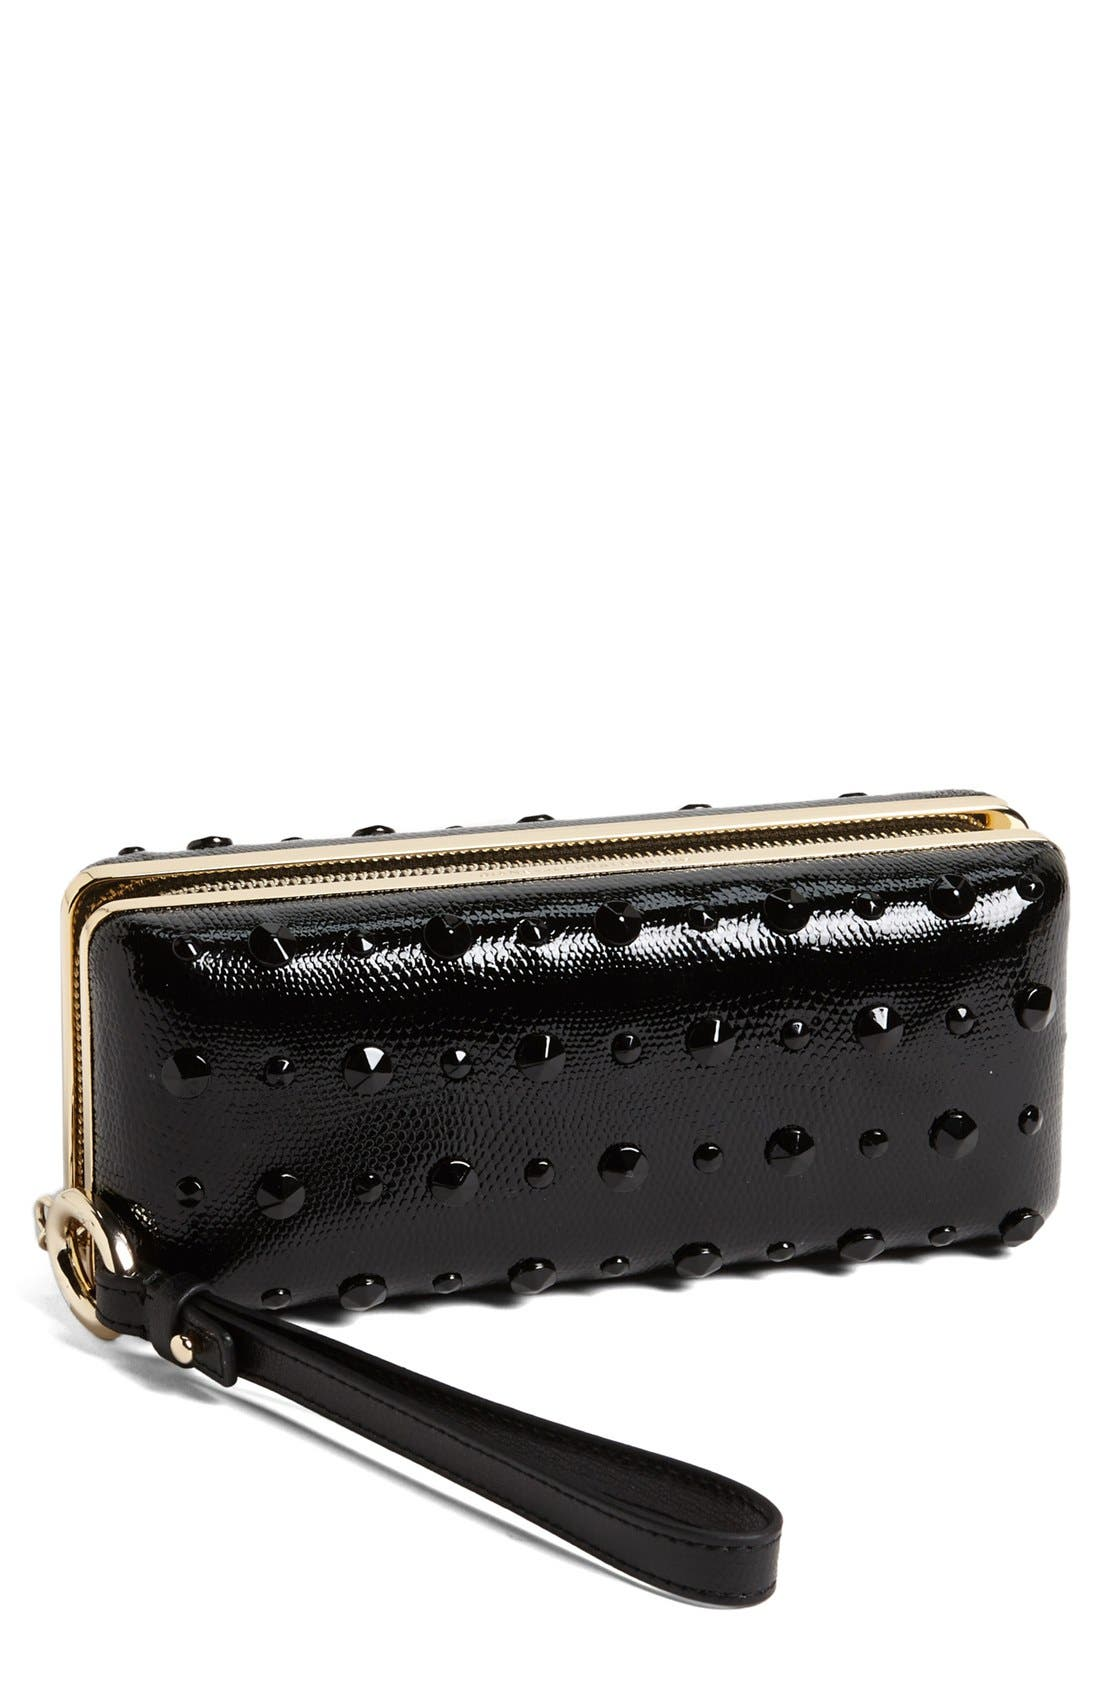 Alternate Image 1 Selected - Diane von Furstenberg 'Joia' Studded Minaudiere